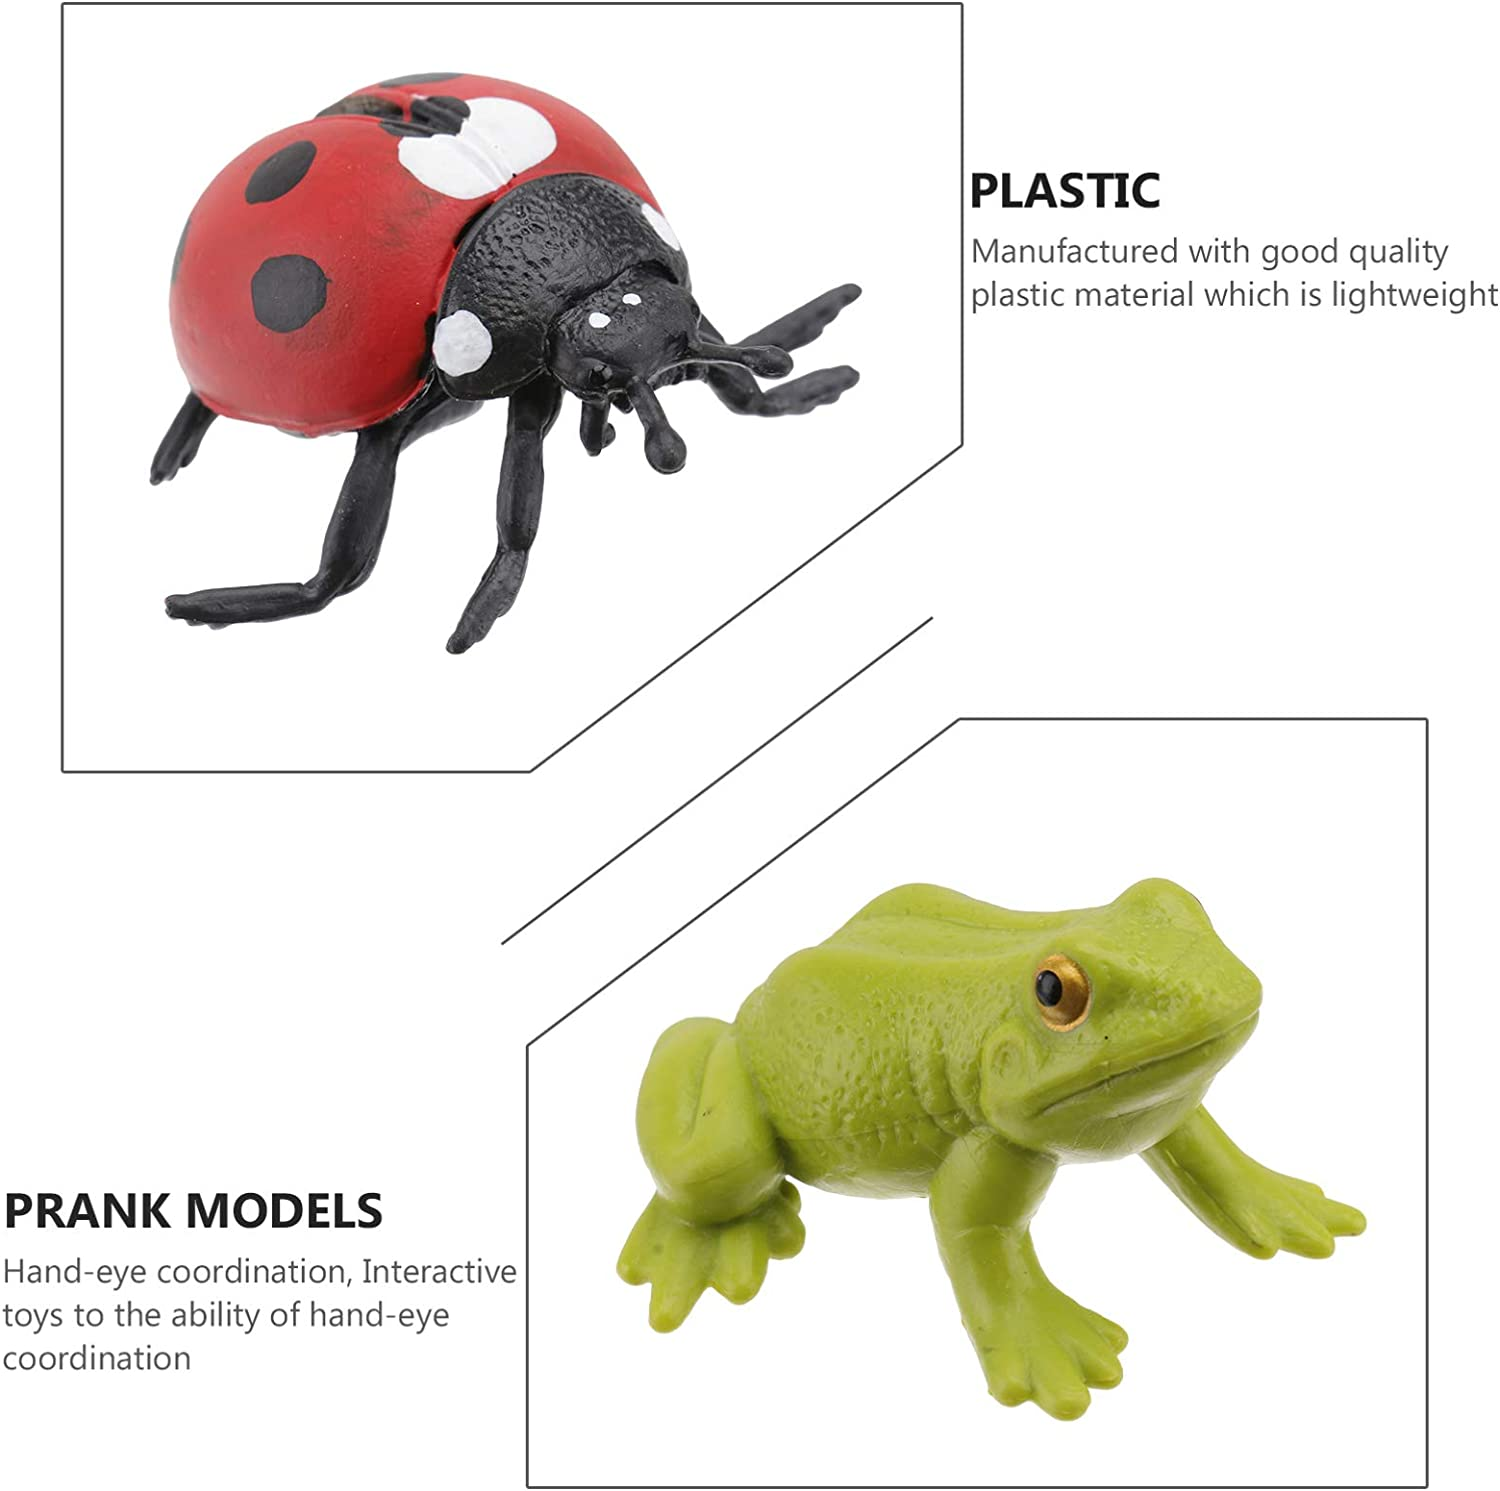 Toddmomy 3 Set Insect Life Cycle Figures Realistic Butterflies Frog Ladybug Life Cycle Model Toys Teaching Aids Educational Toys for Kids Children